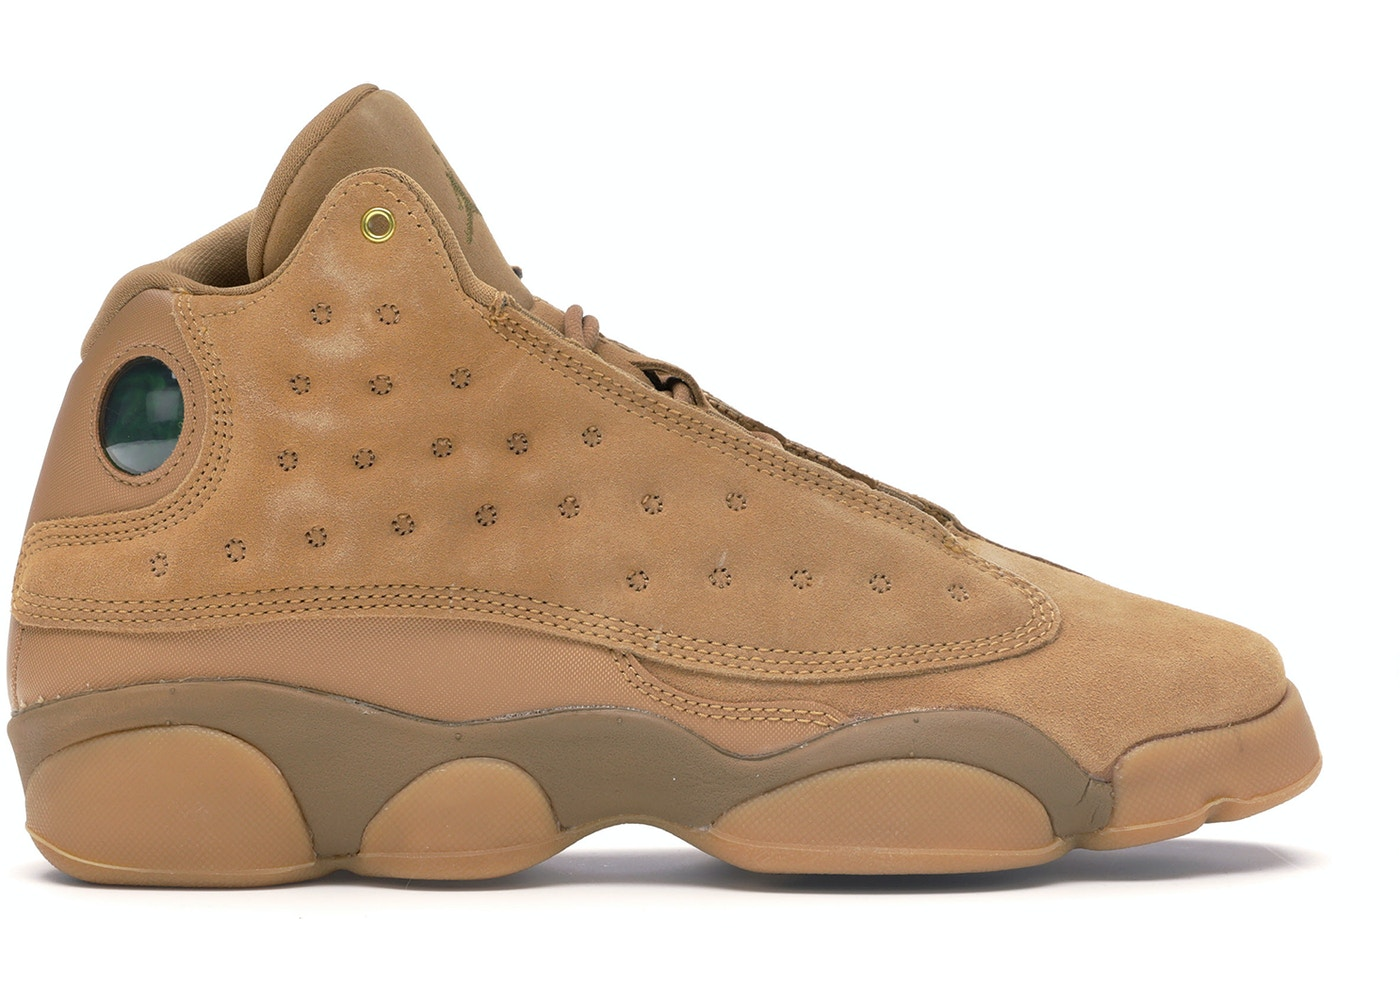 0bb9faeeb7aac0 Sell. or Ask. Size  5Y. View All Bids. Jordan 13 Retro Wheat ...